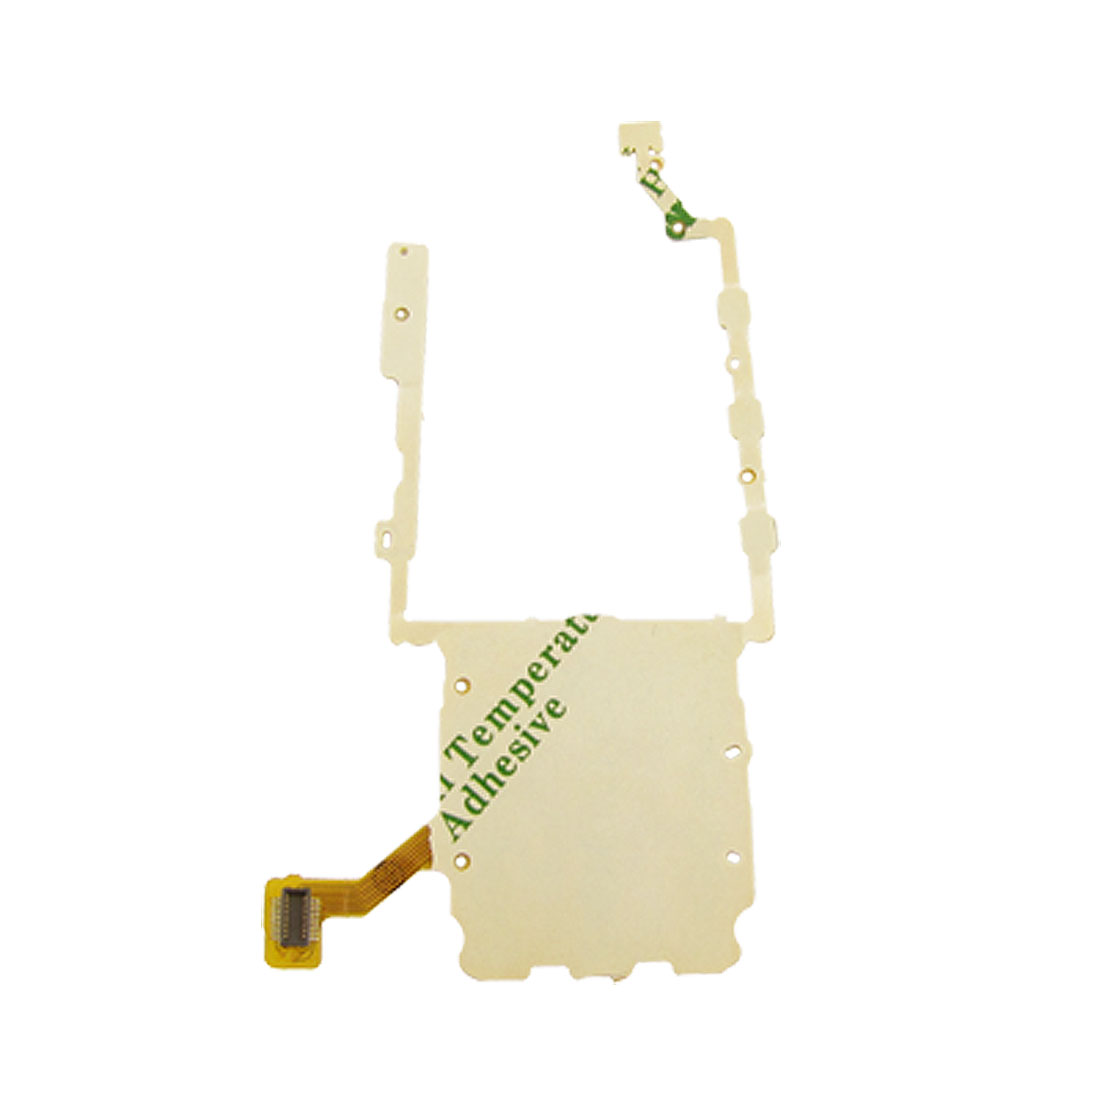 Replacement Membrane Keyboard Flex Cable for Nokia 5310